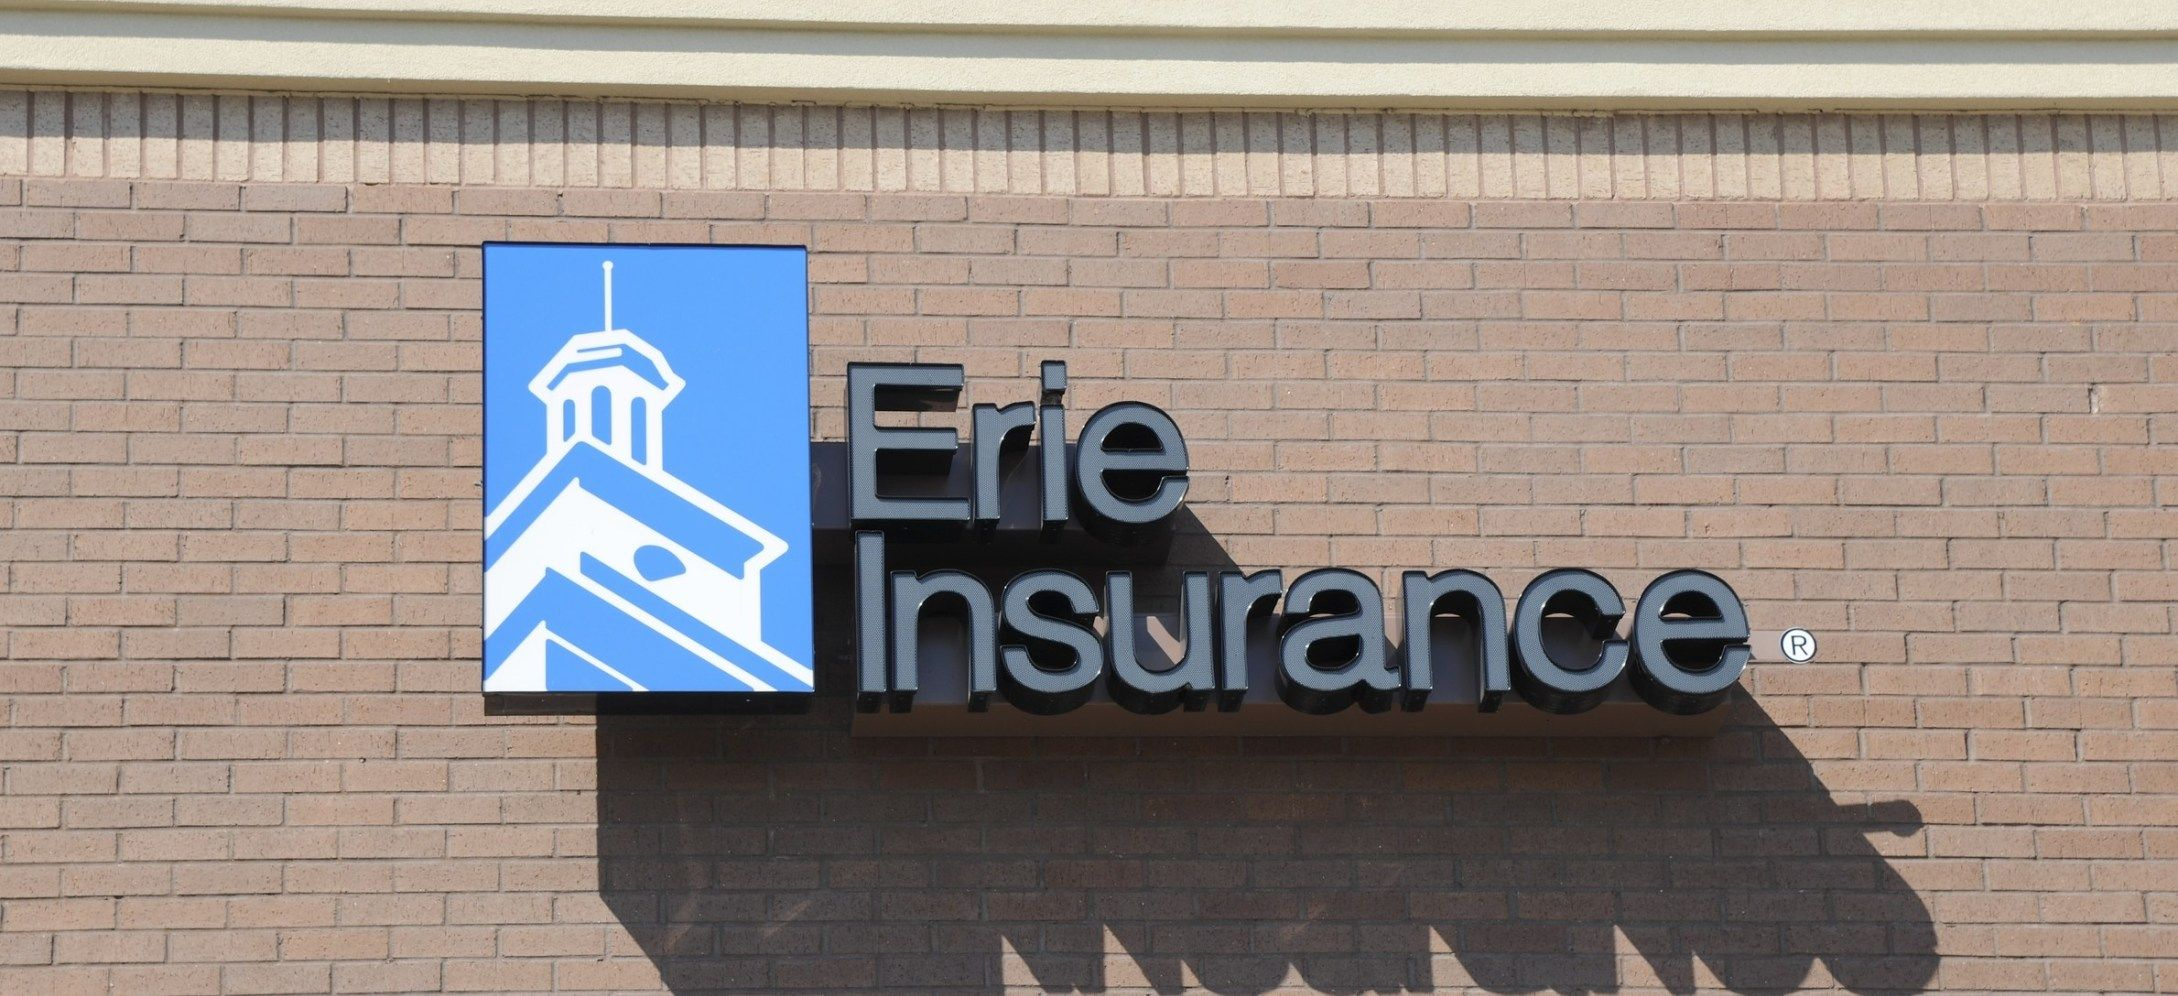 Erie Insurance 6 things to know about the toprated